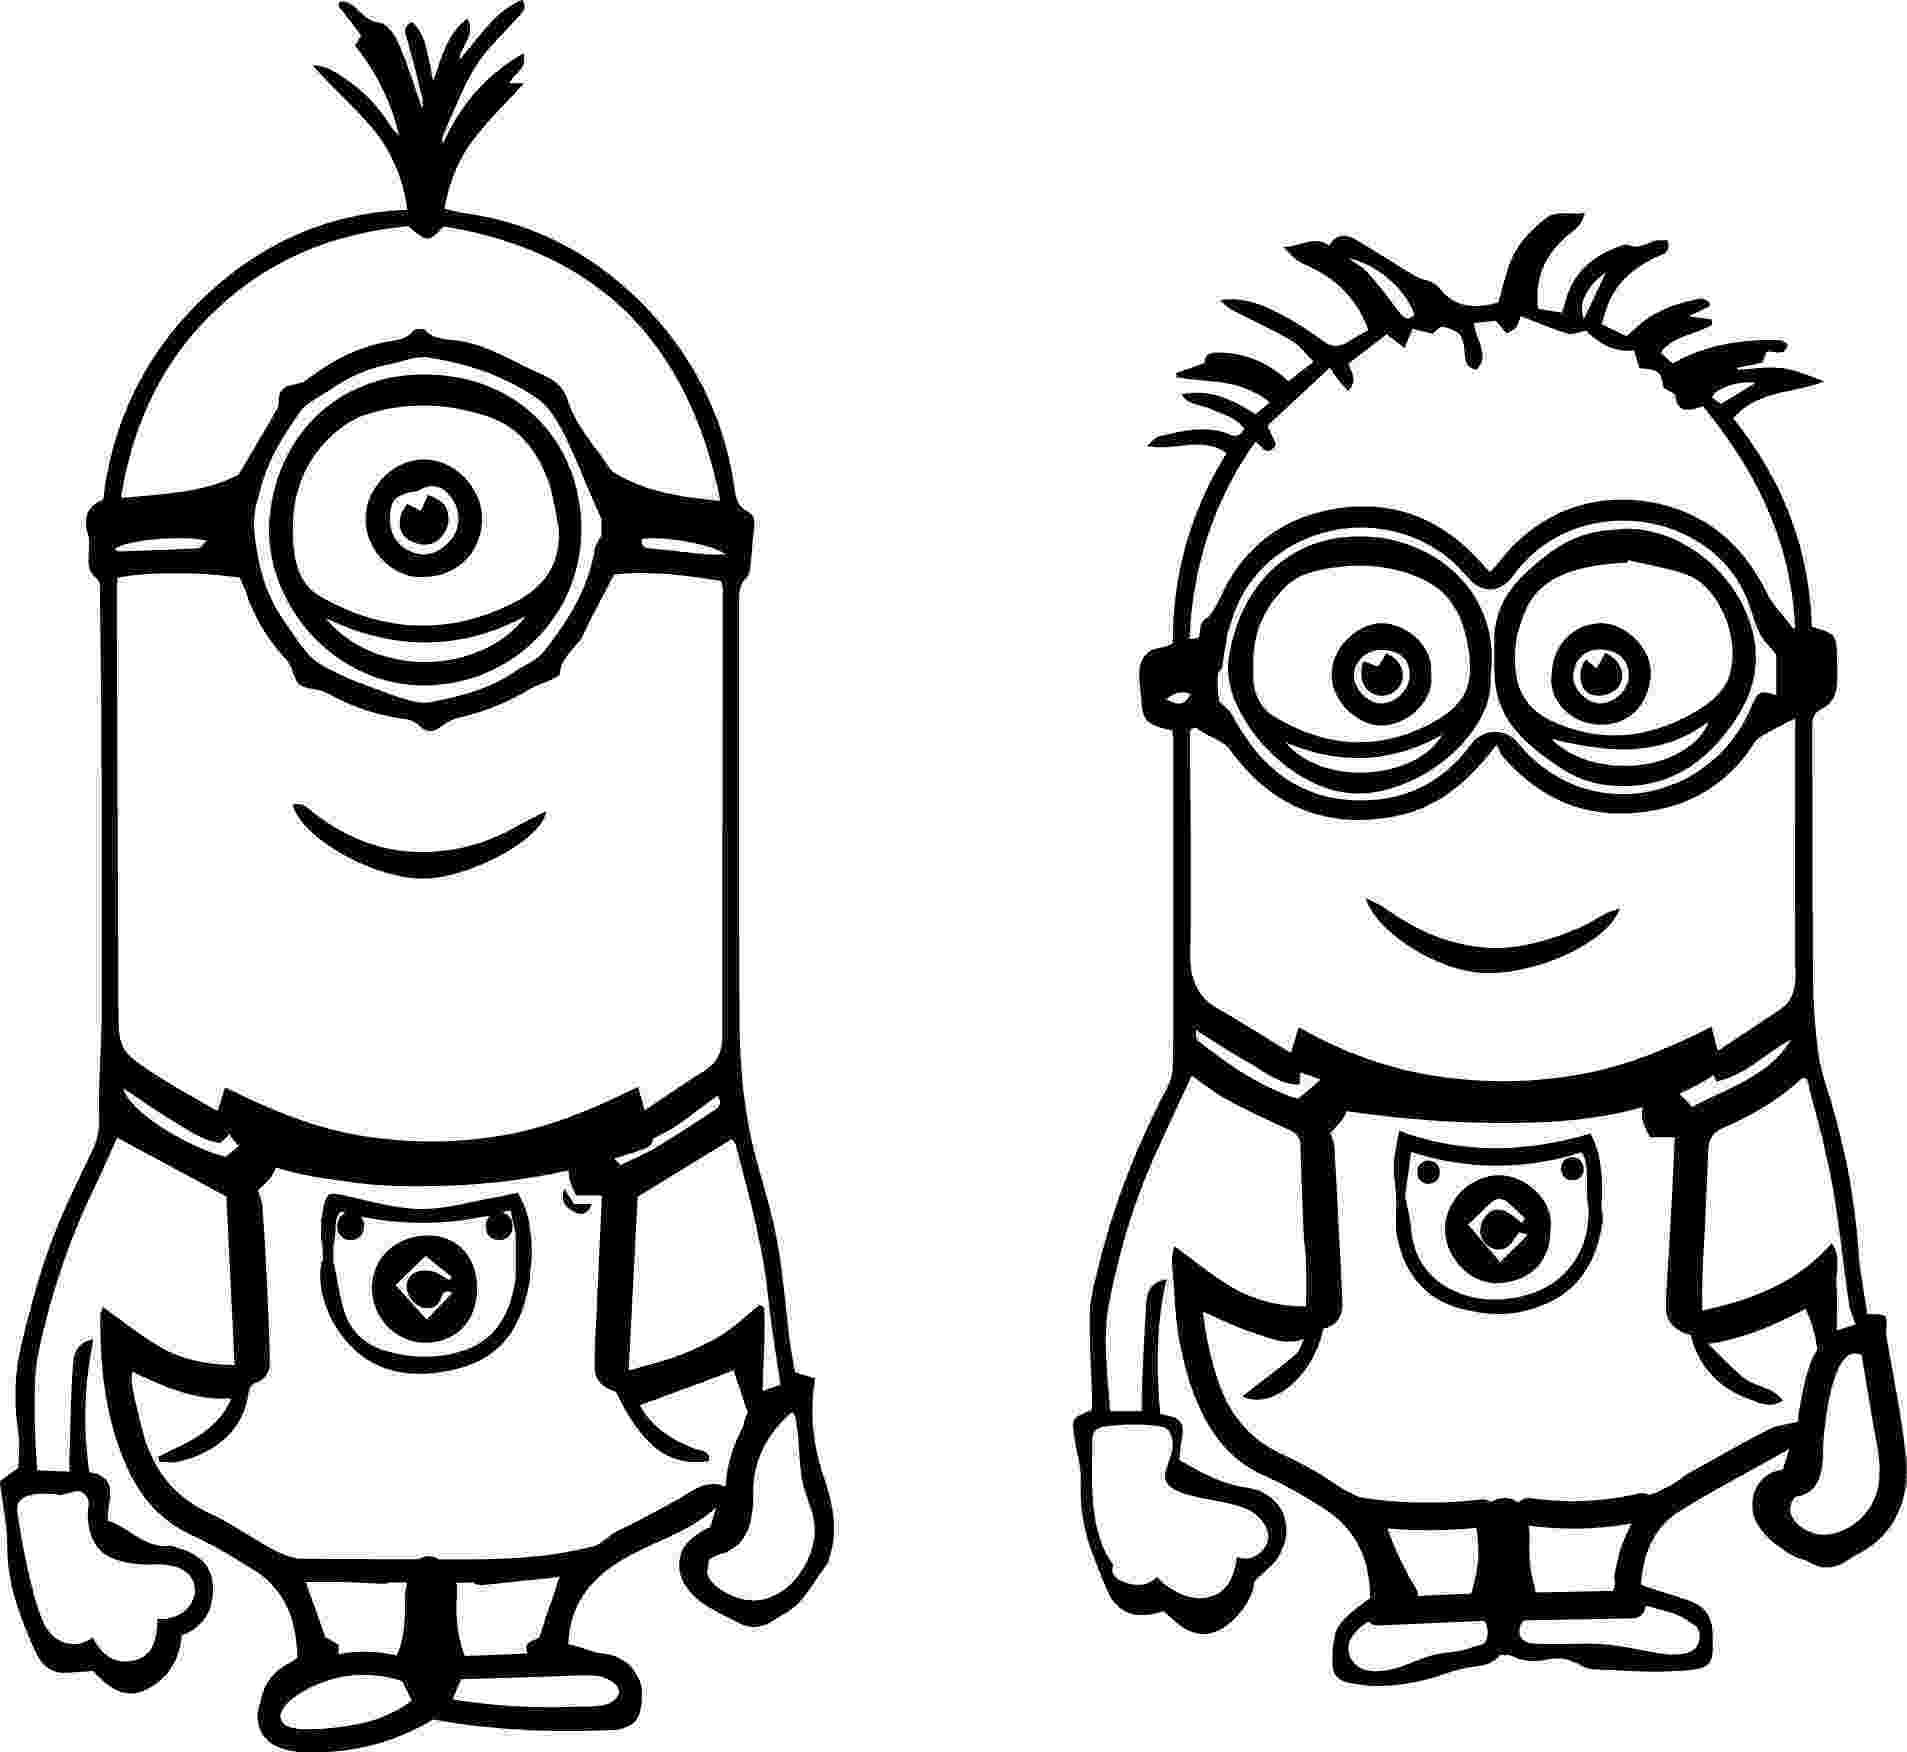 pictures of minions to color minion coloring pages fotolipcom rich image and wallpaper of minions to color pictures